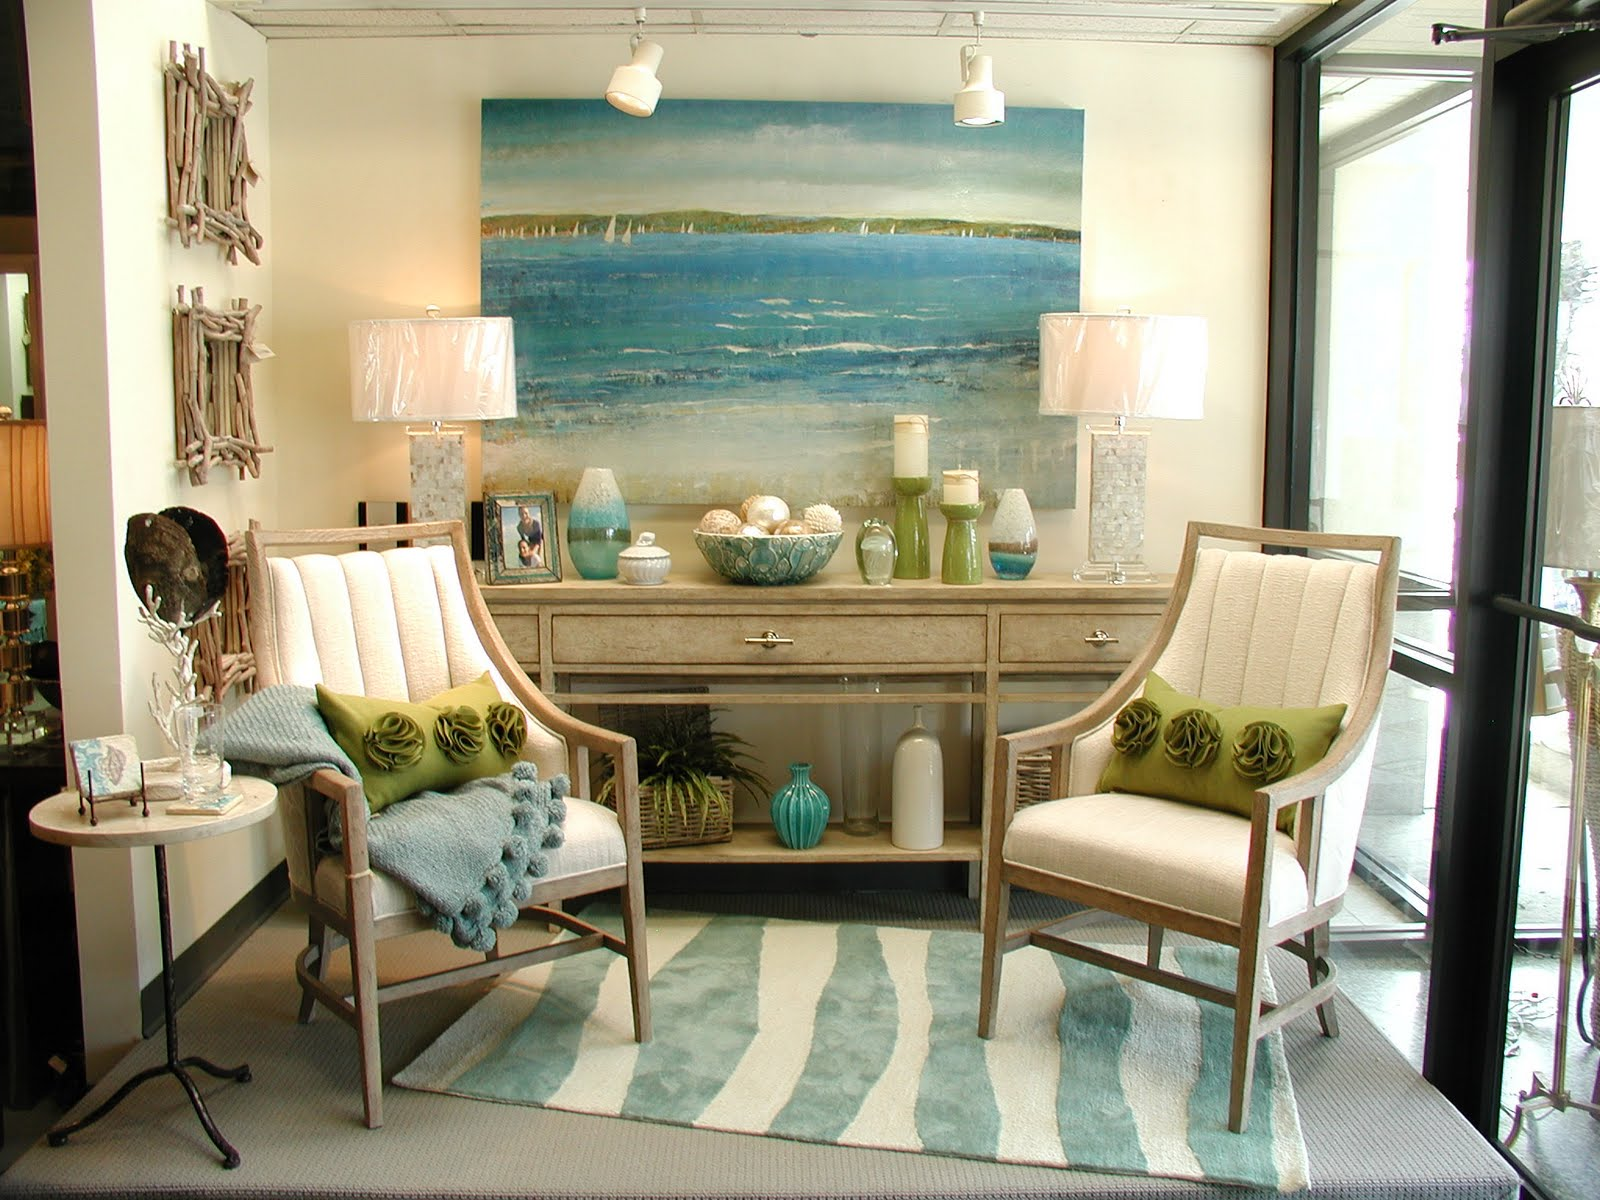 Details of design interior design in annapolis this summer for As interior design